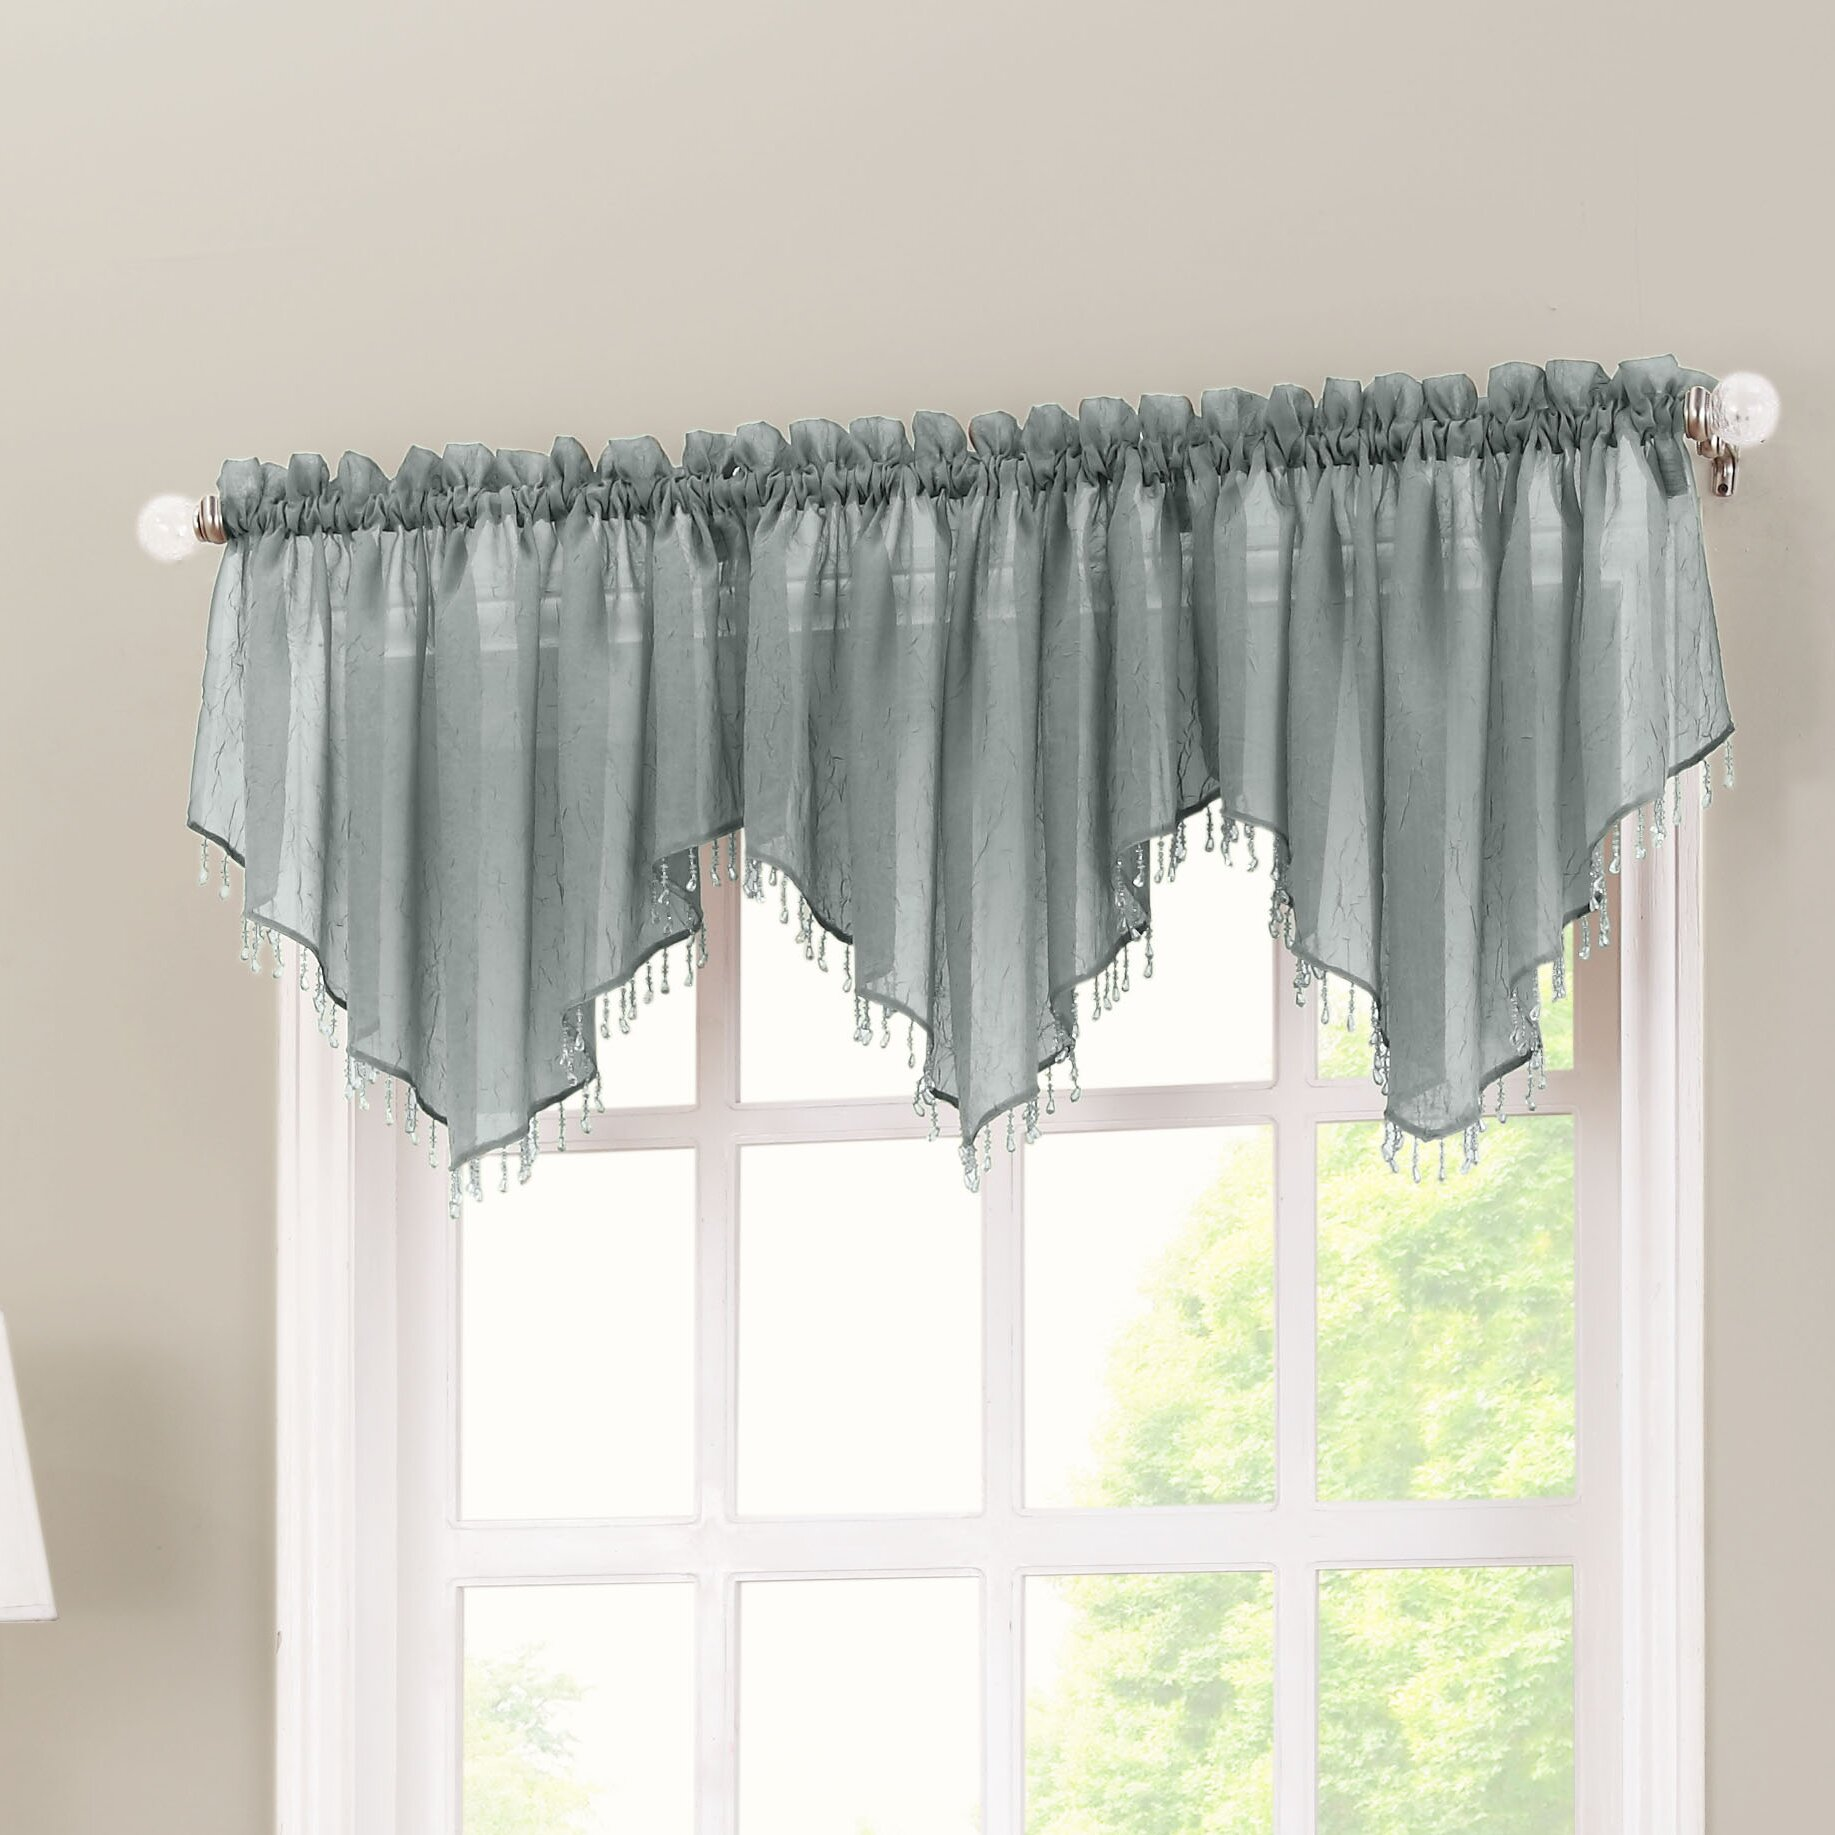 No 918 Crushed Sheer Voile 51 Quot Curtain Valance Amp Reviews